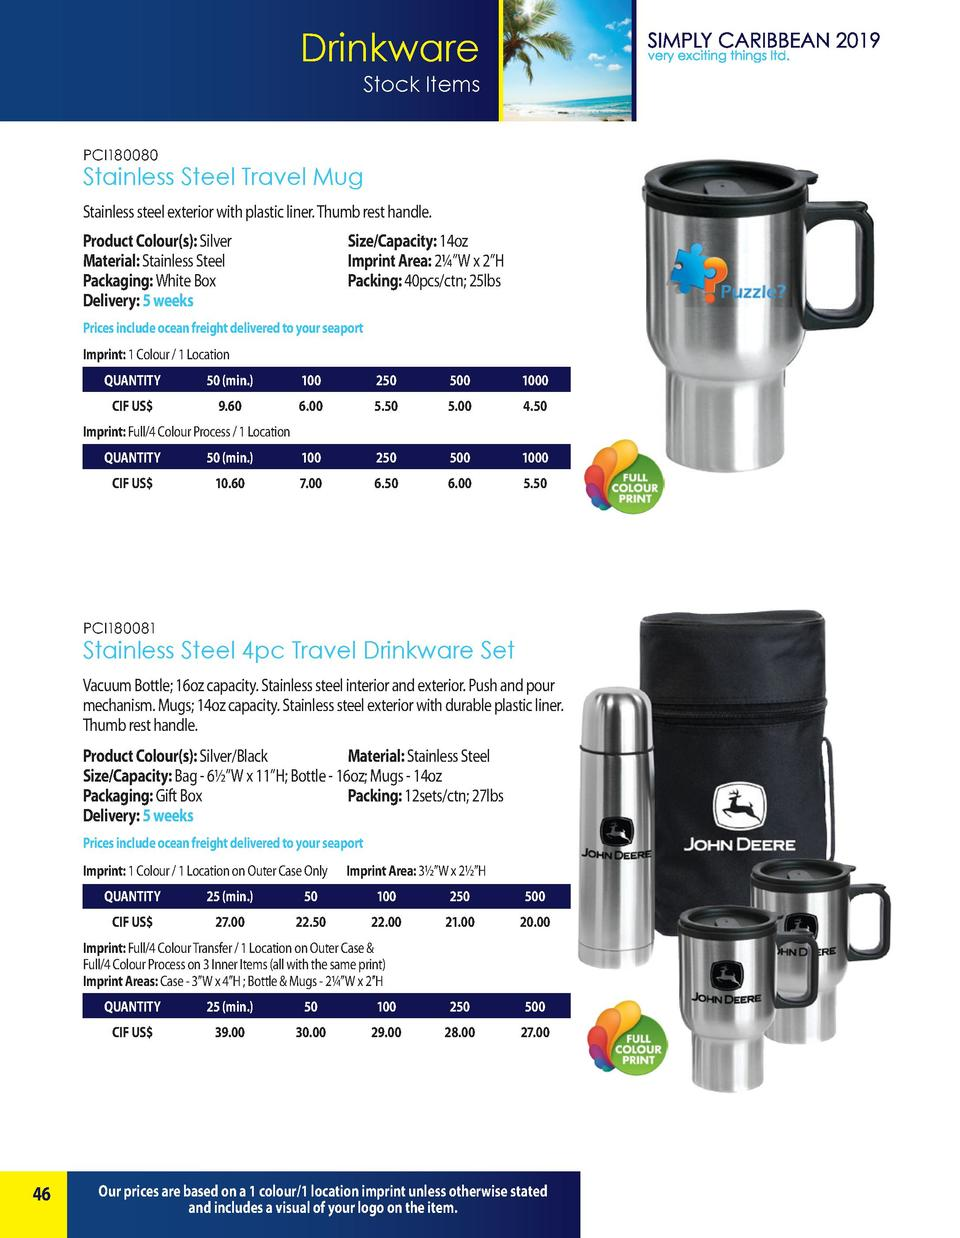 Drinkware Stock Items PCI180080  Stainless Steel Travel Mug Stainless steel exterior with plastic liner. Thumb rest handle...